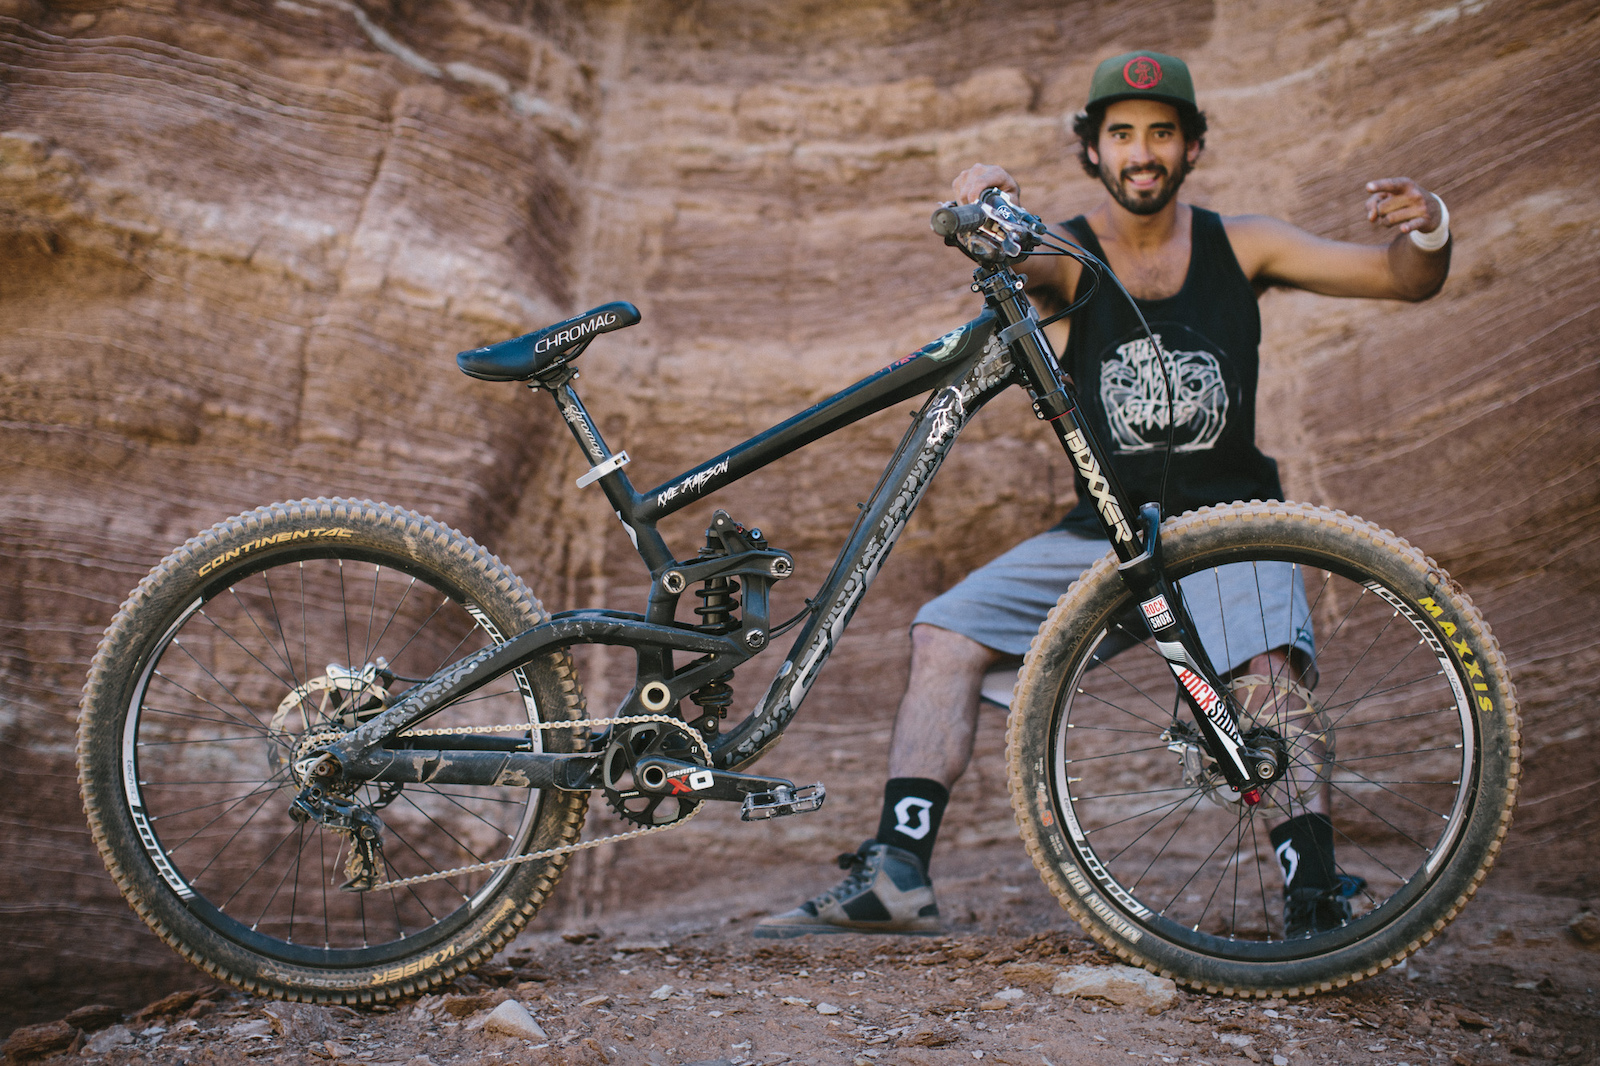 Kyle Jameson at RedBull Rampage 2015 Virgin Utah USA